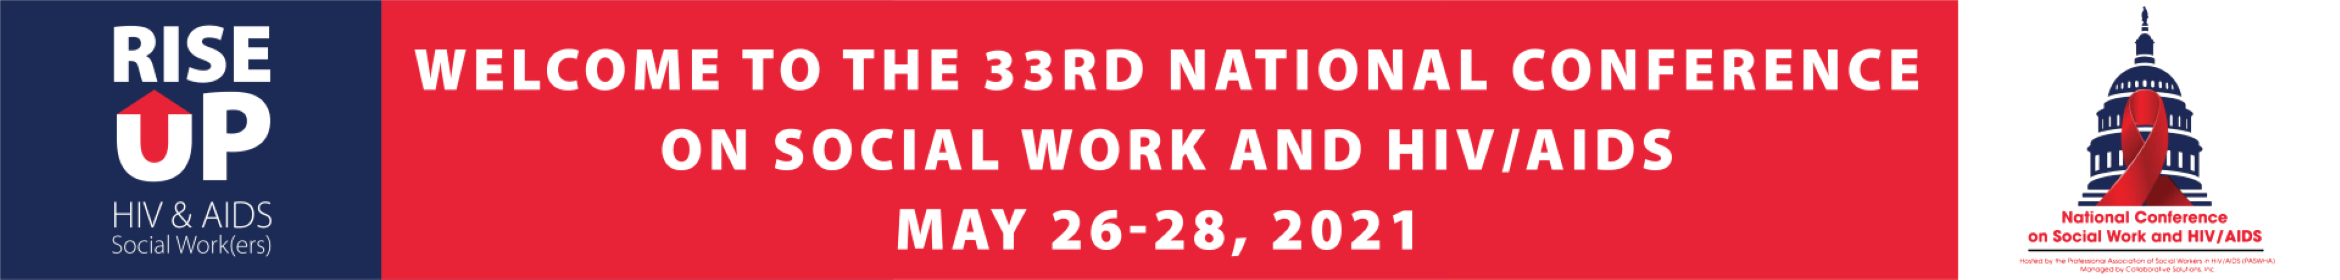 2021 National Conference on Social Work & HIV/AIDS Main banner